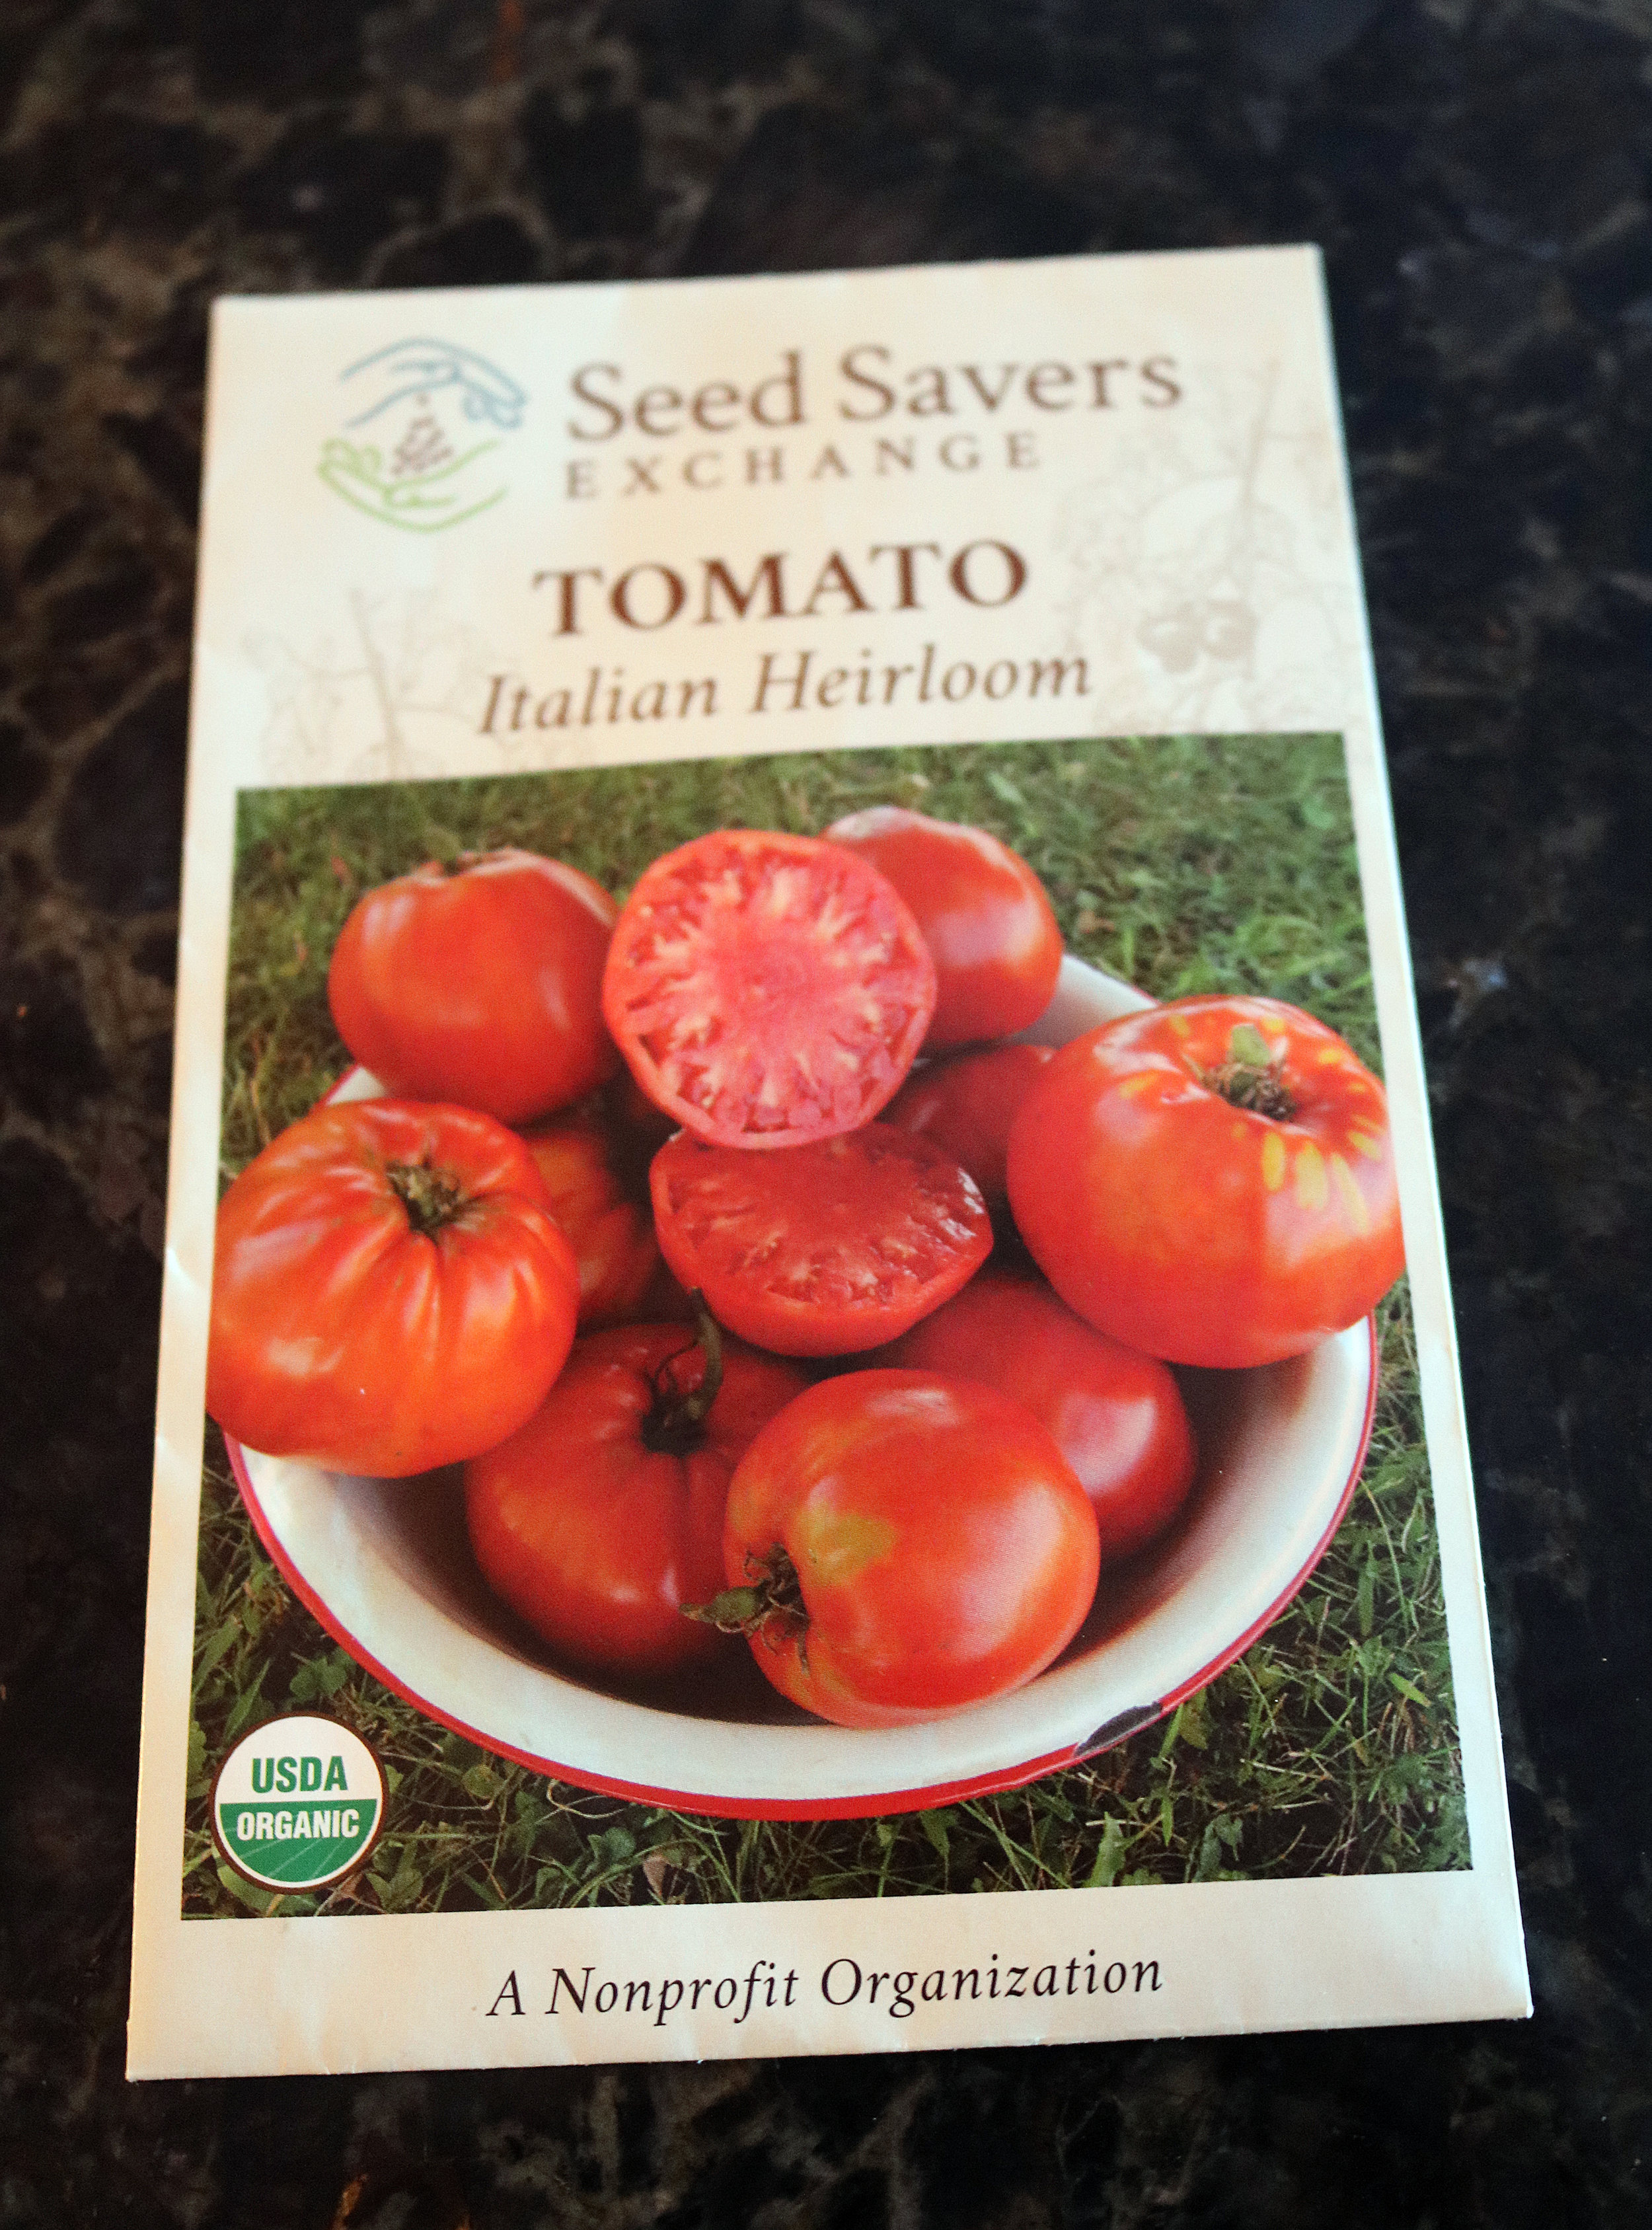 The  'Italian Heirloom'  tomato is one of dozens of open-pollinated tomato varieties sold by Seed Savers Exchange.